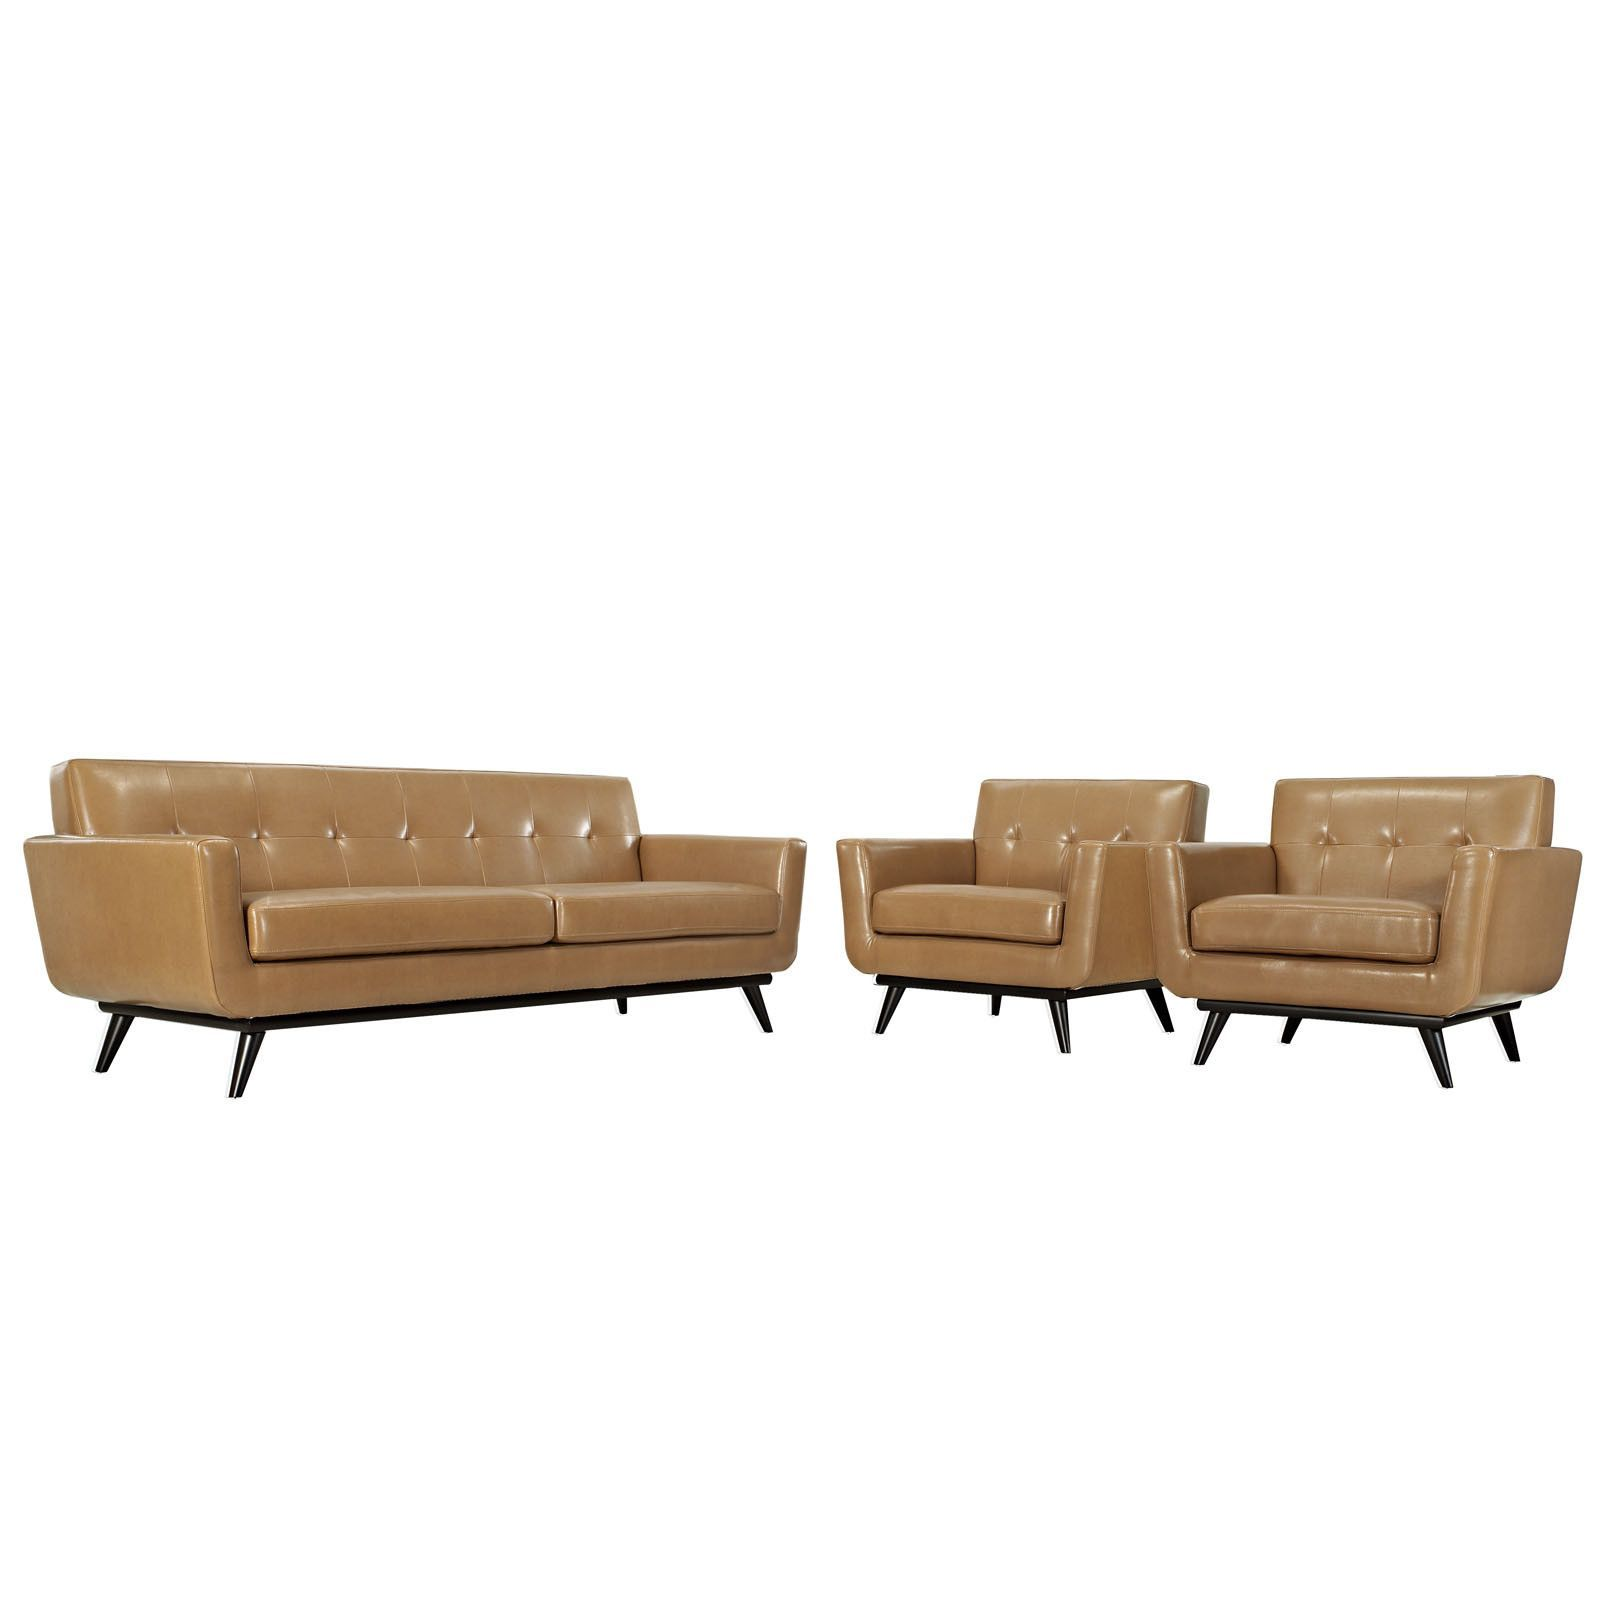 buy Engage 3 Piece Leather Living Room Set at Harvey & Haley for ...